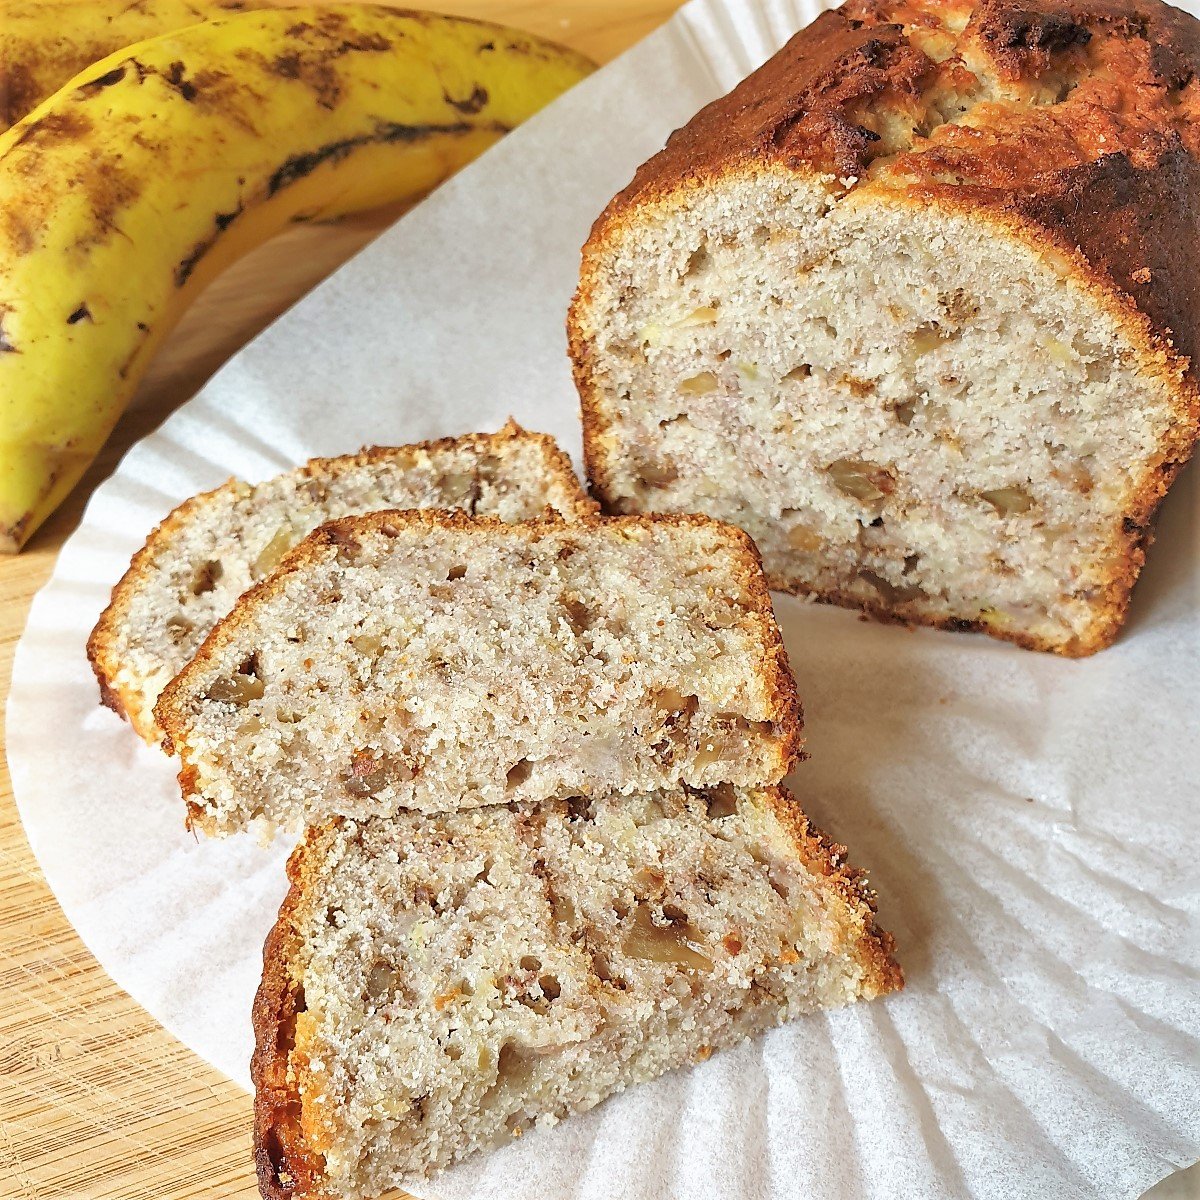 Slices of banana walnut bread in front of the whole loaf, next to a banana.